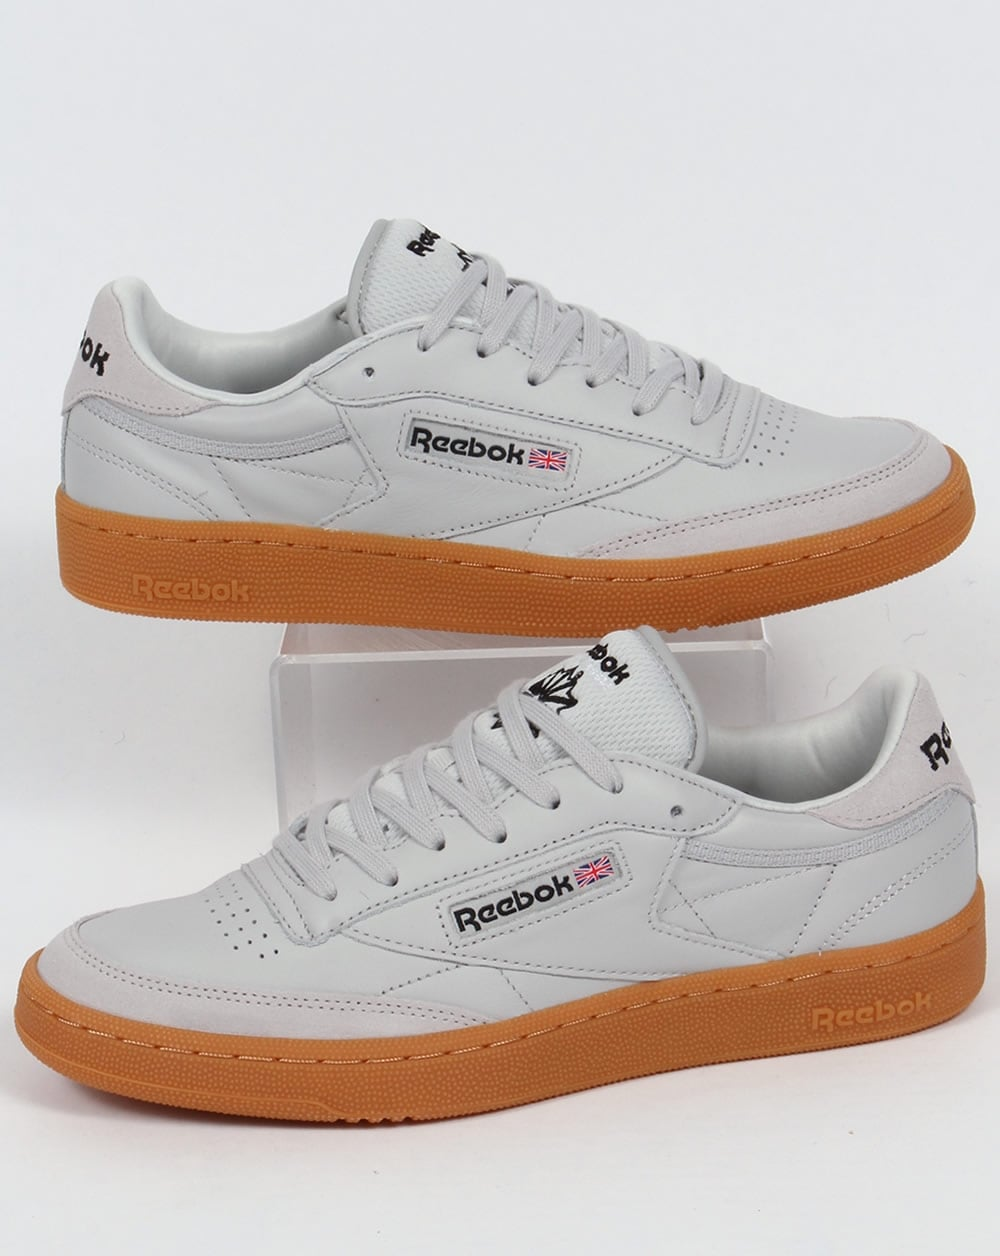 d36f0ee41b Reebok Club C 85 Trainers Skull Grey/Black/Red